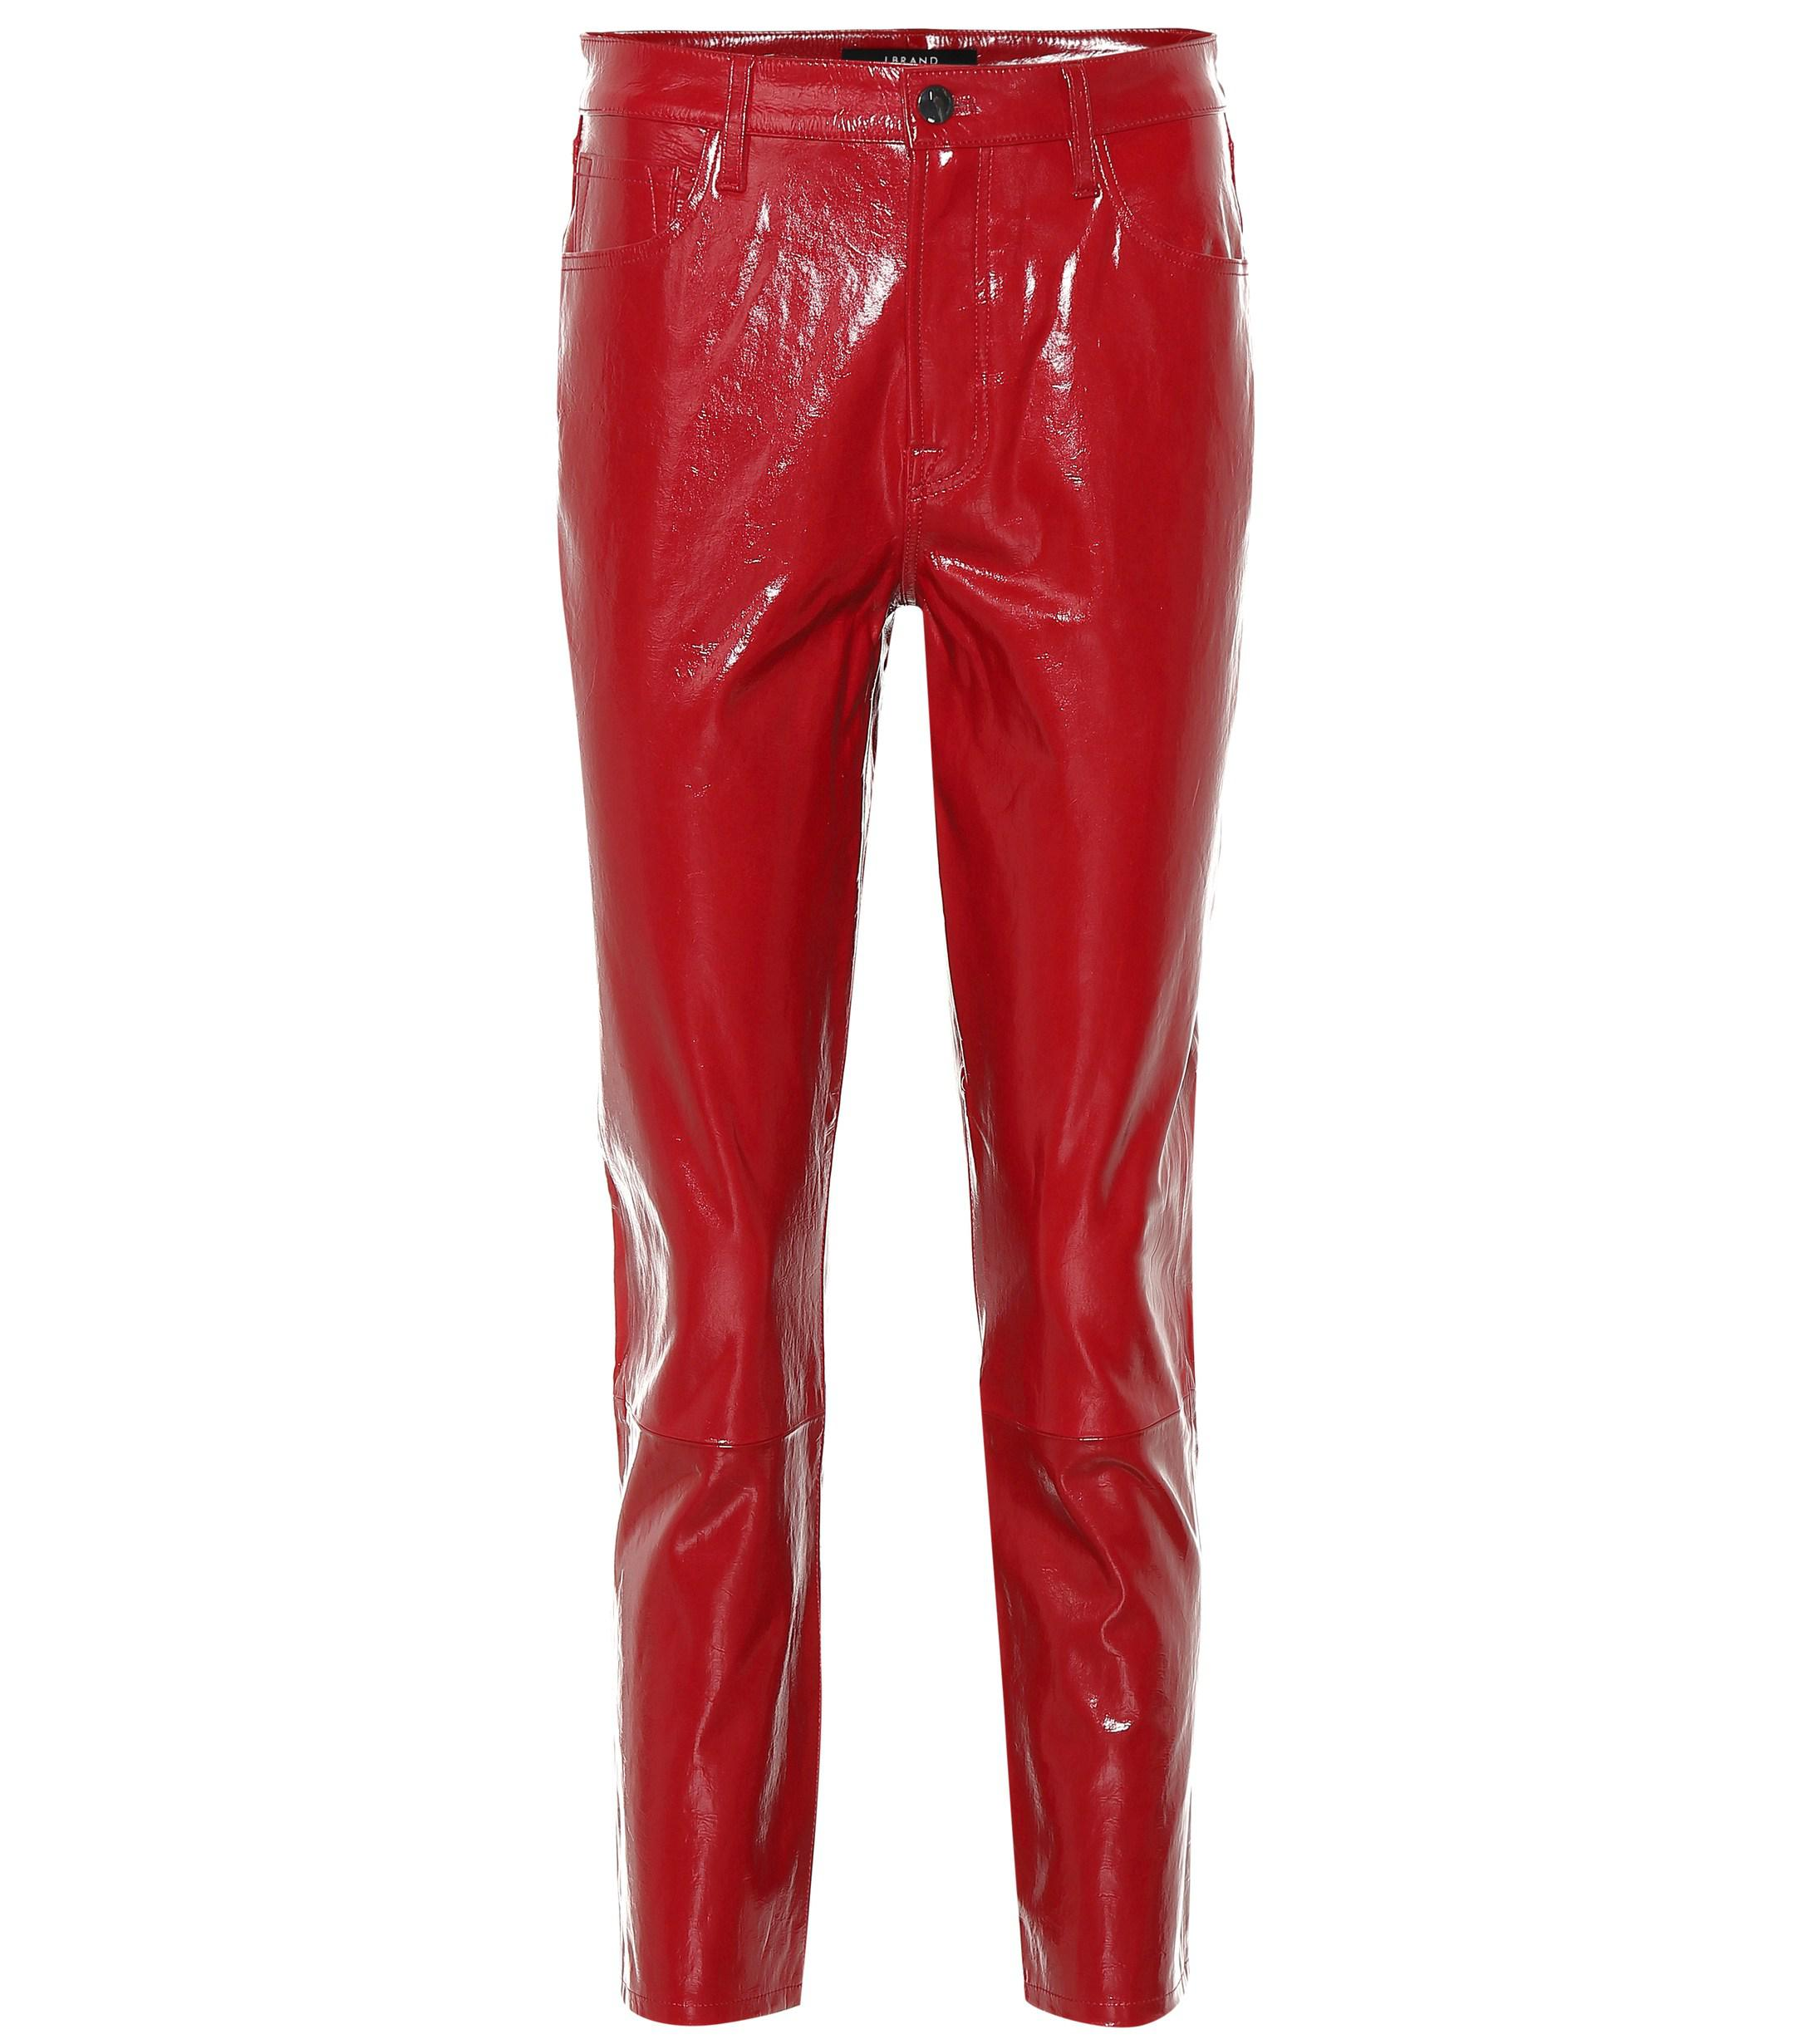 6accd00d643e J Brand. Women s Red Ruby High-rise Patent Leather Trousers